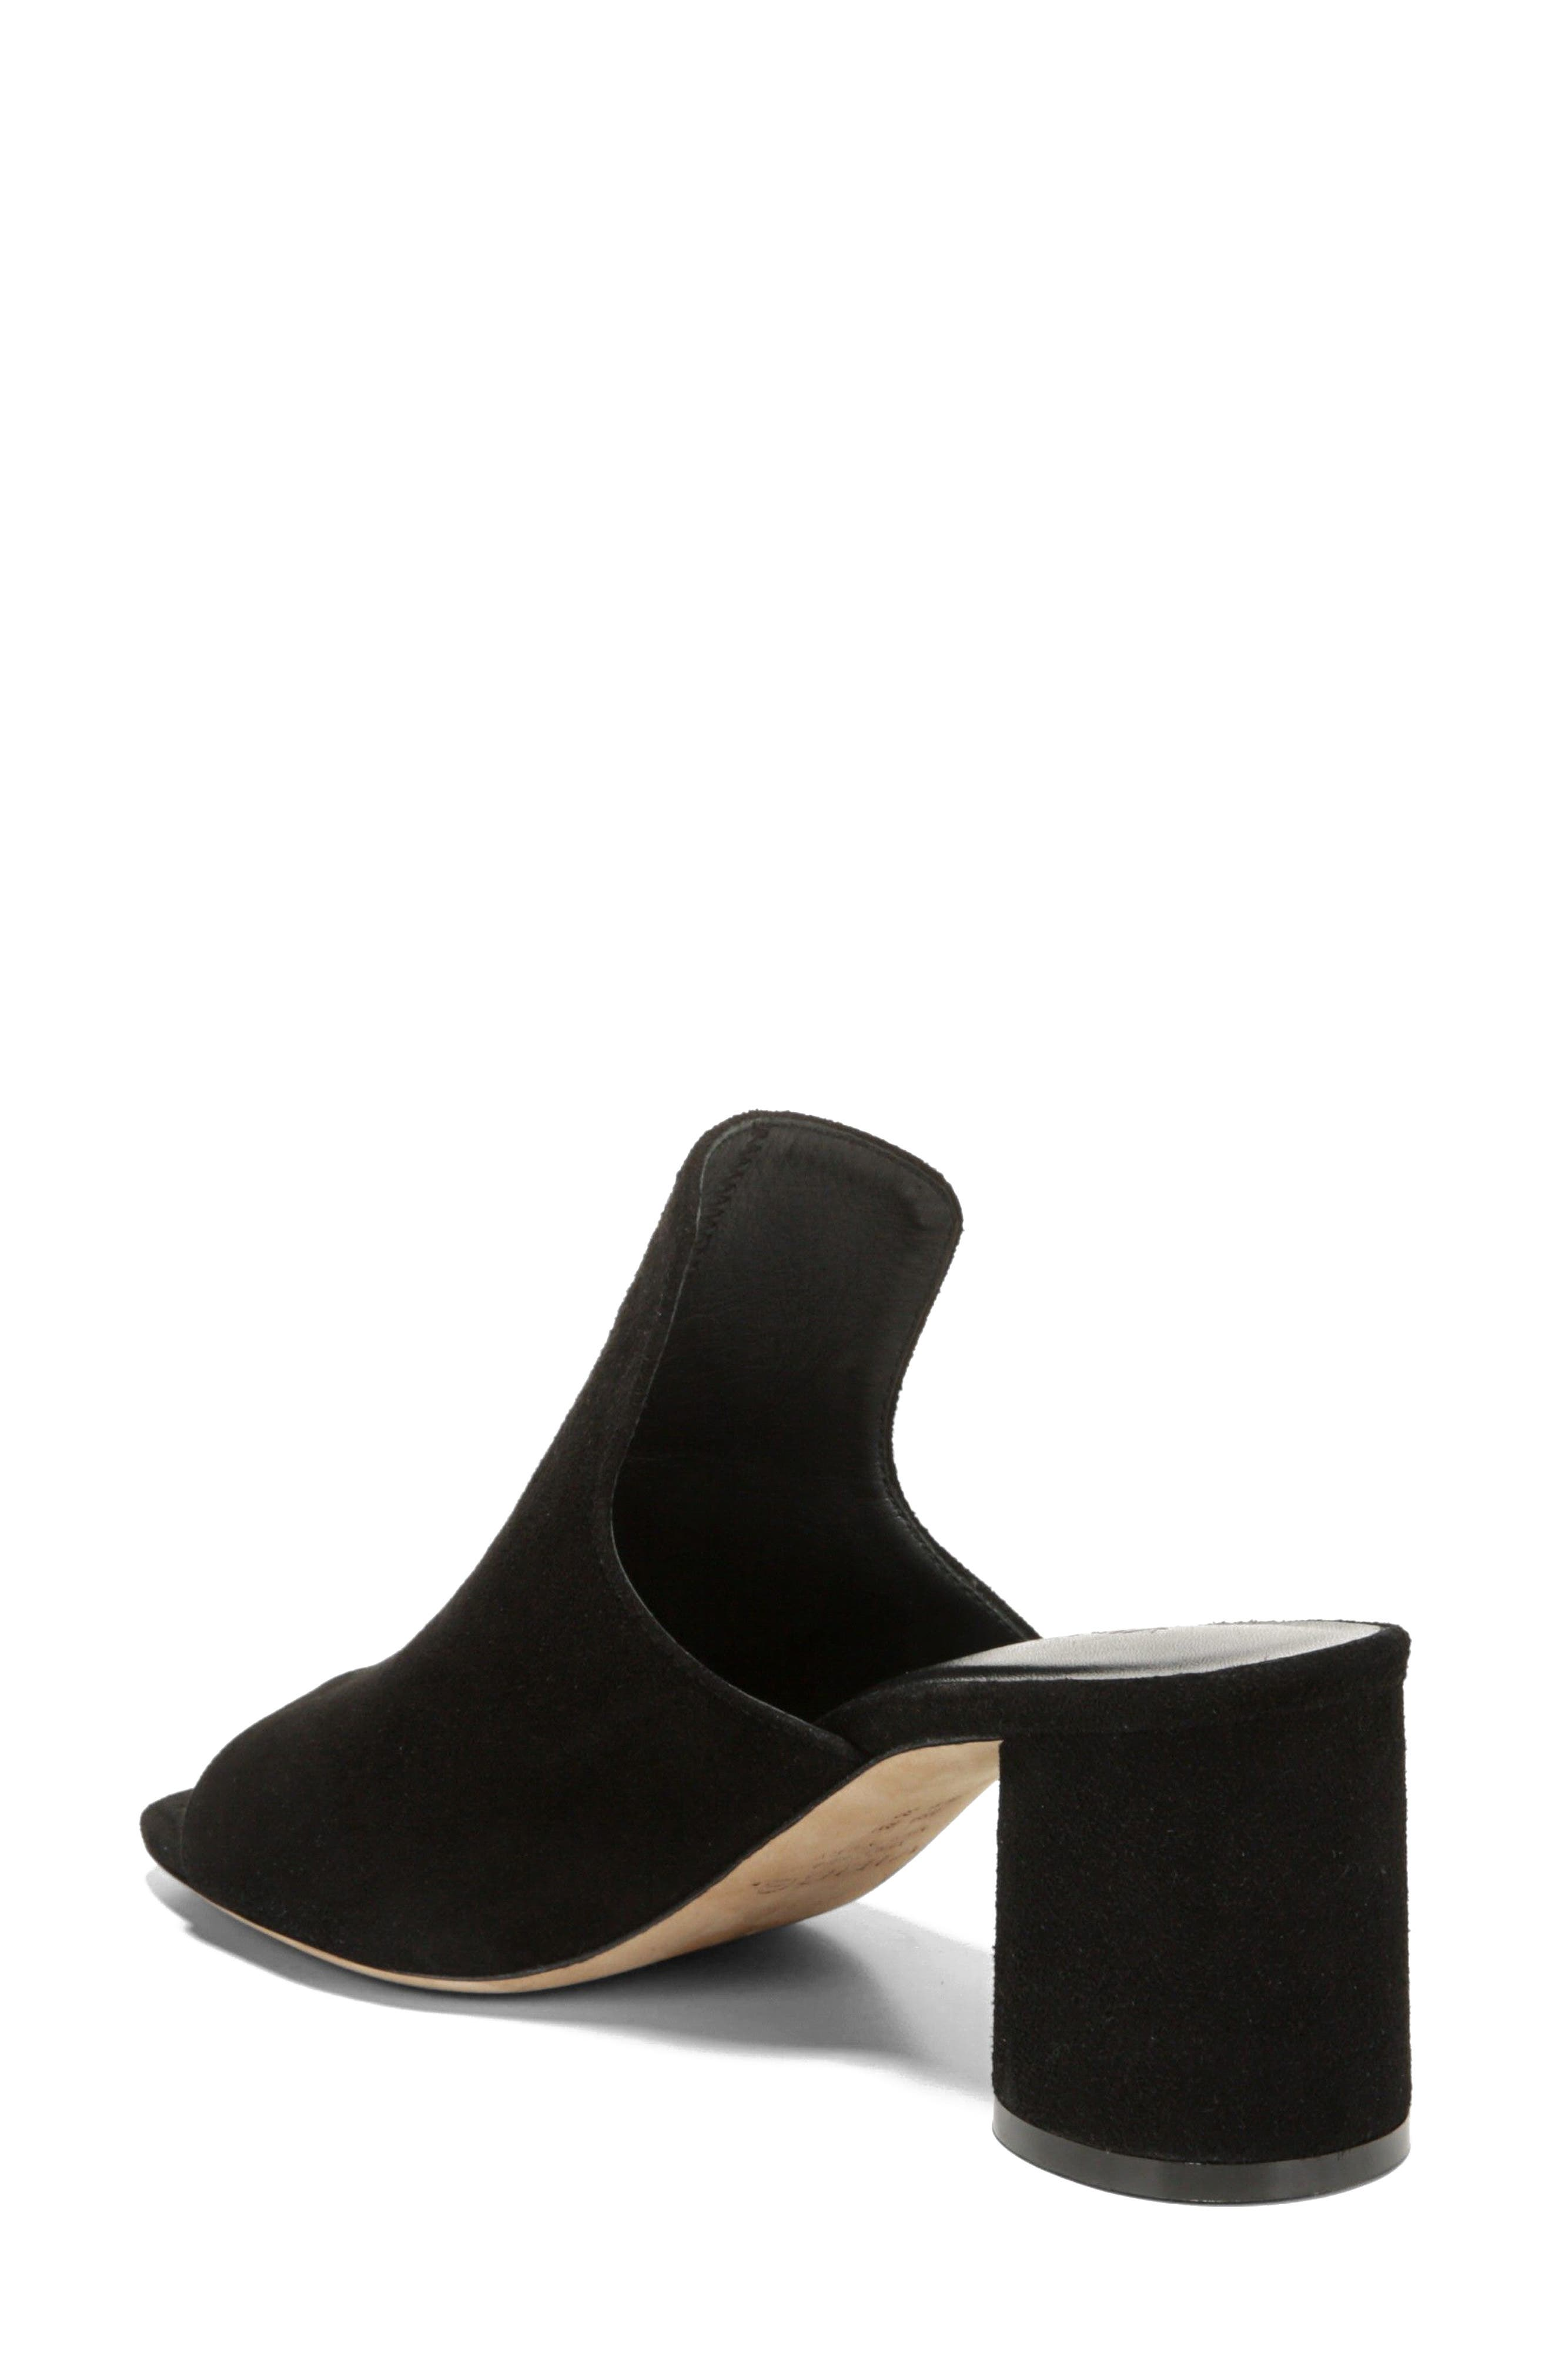 Tanay Loafer Mule,                             Alternate thumbnail 2, color,                             BLACK SUEDE LEATHER